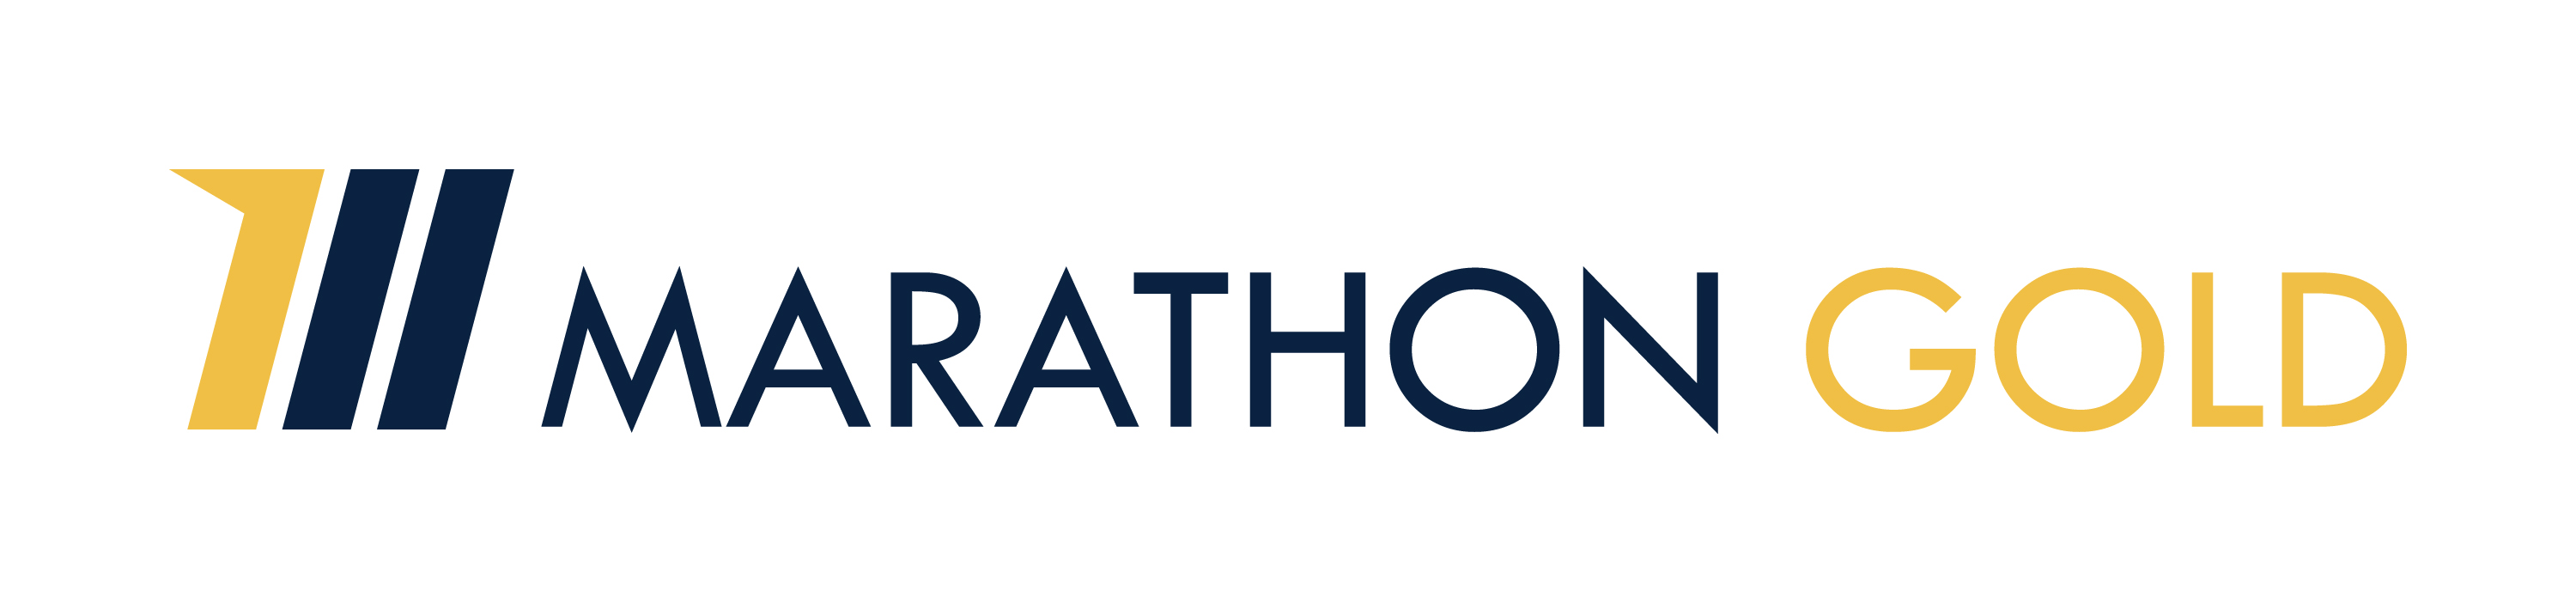 Marathon Gold Signs Cooperation Agreements with Six Communities for the Valentine Gold Project